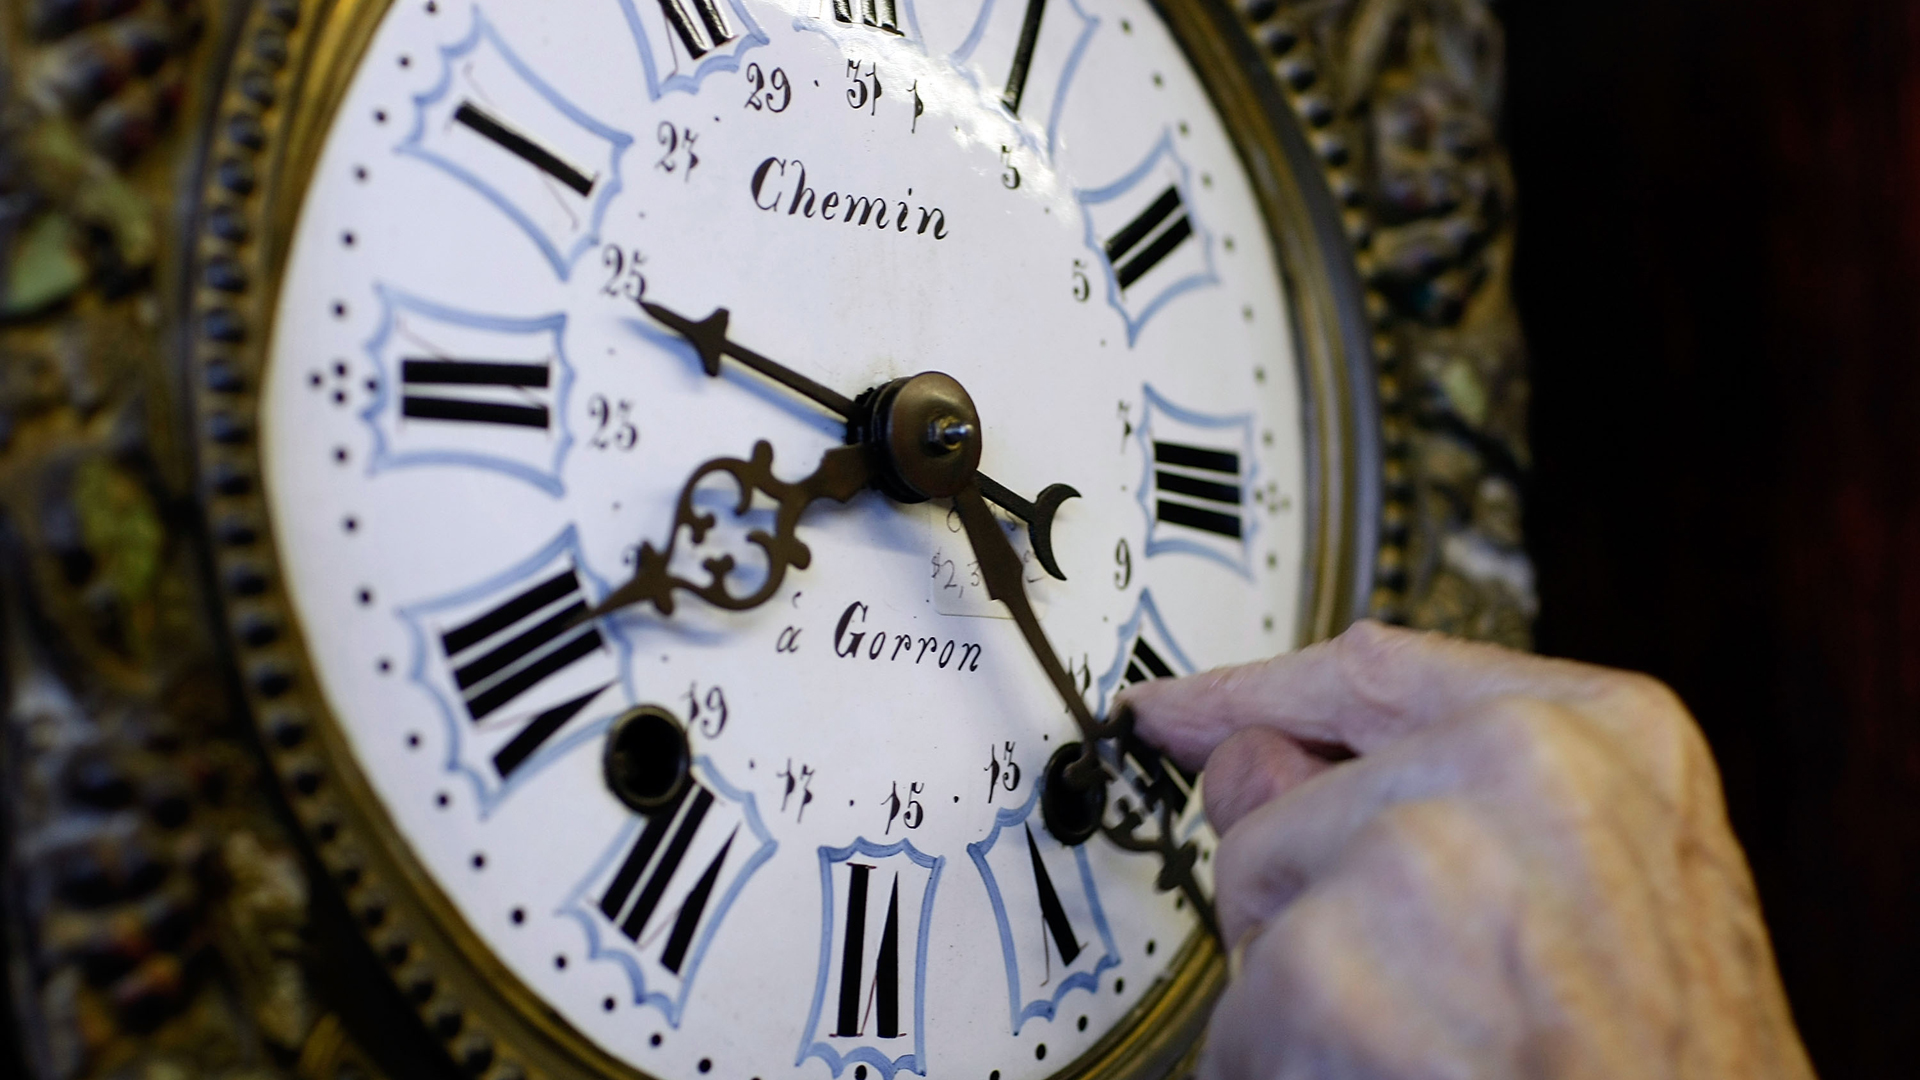 A clock is seen in a file photo. (Credit: Joe Raedle/Getty Images)